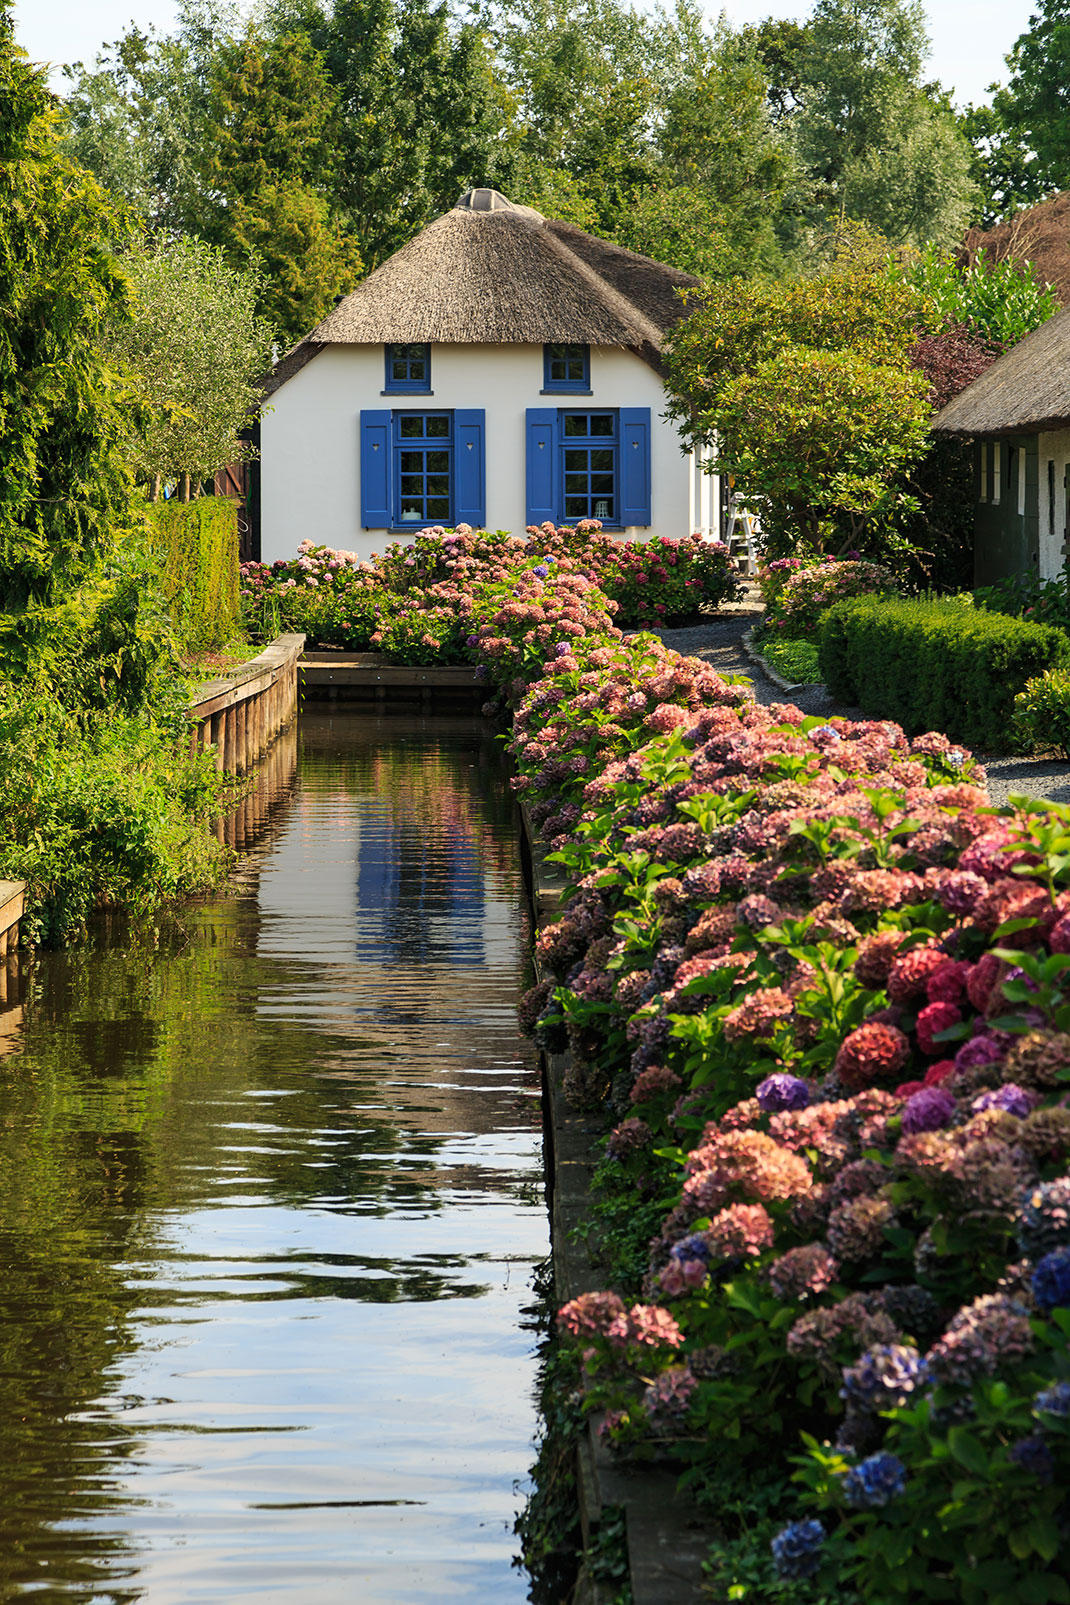 Giethoorn-Pays-Bas-16